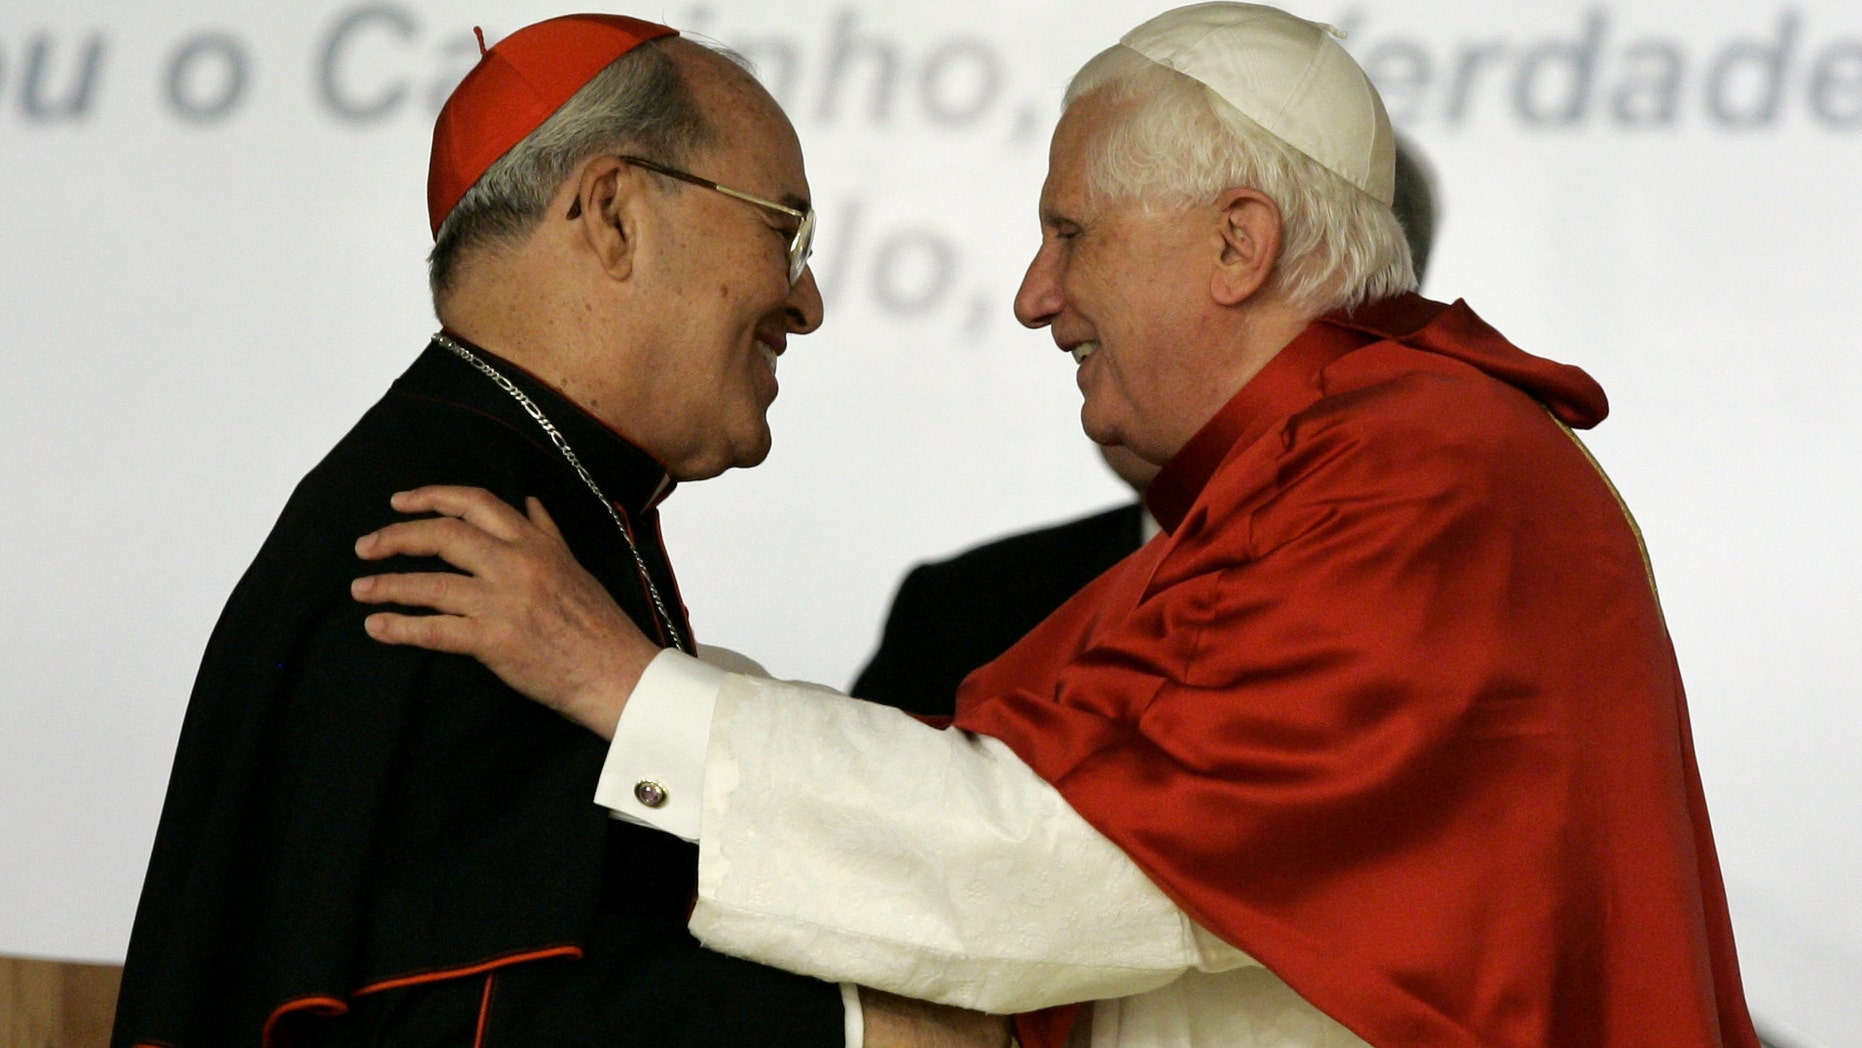 In this 2007 fphoto, Pope Benedict XVI, right, embraces Cardinal Jaime Ortega Alamino, Archbishop of Havana, Cuba, during the inauguration ceremony of the V Conference of Latin American and the Caribbean Bishops in Aparecida, Brazil.